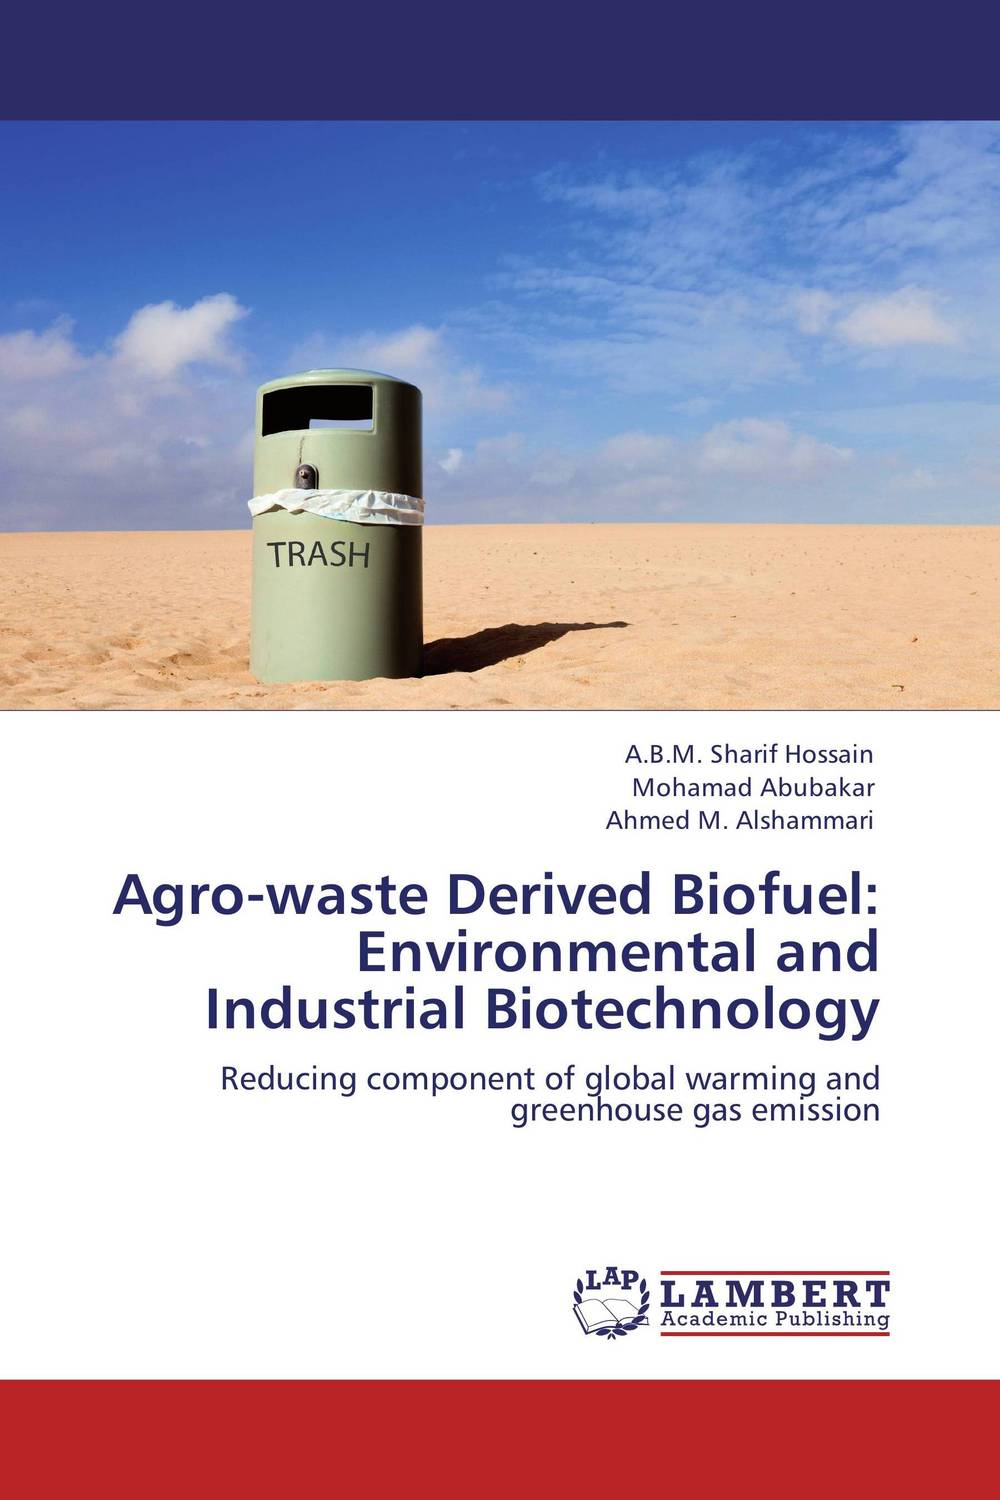 Agro-waste Derived Biofuel: Environmental and Industrial Biotechnology prc environmental mgmt s hazardous waste reducation in the metal finishing industry